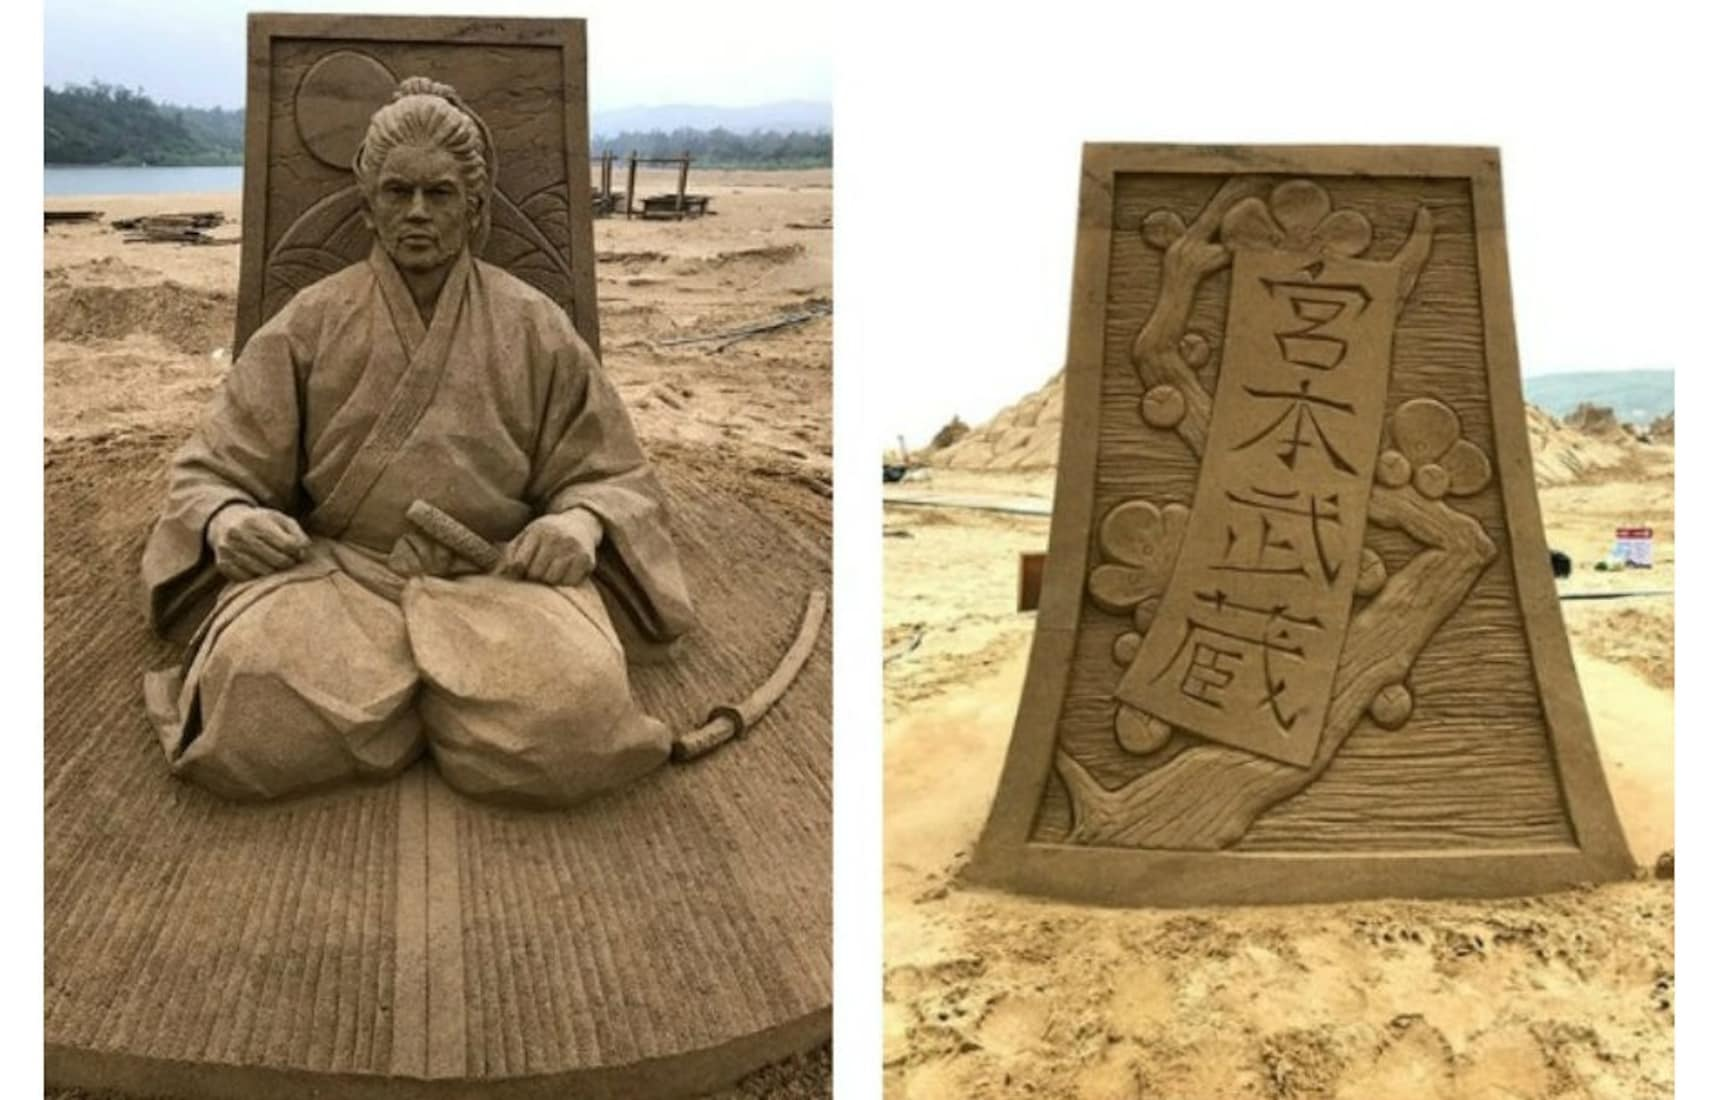 Toshihiko Hosaka's Incredible Sand Sculptures